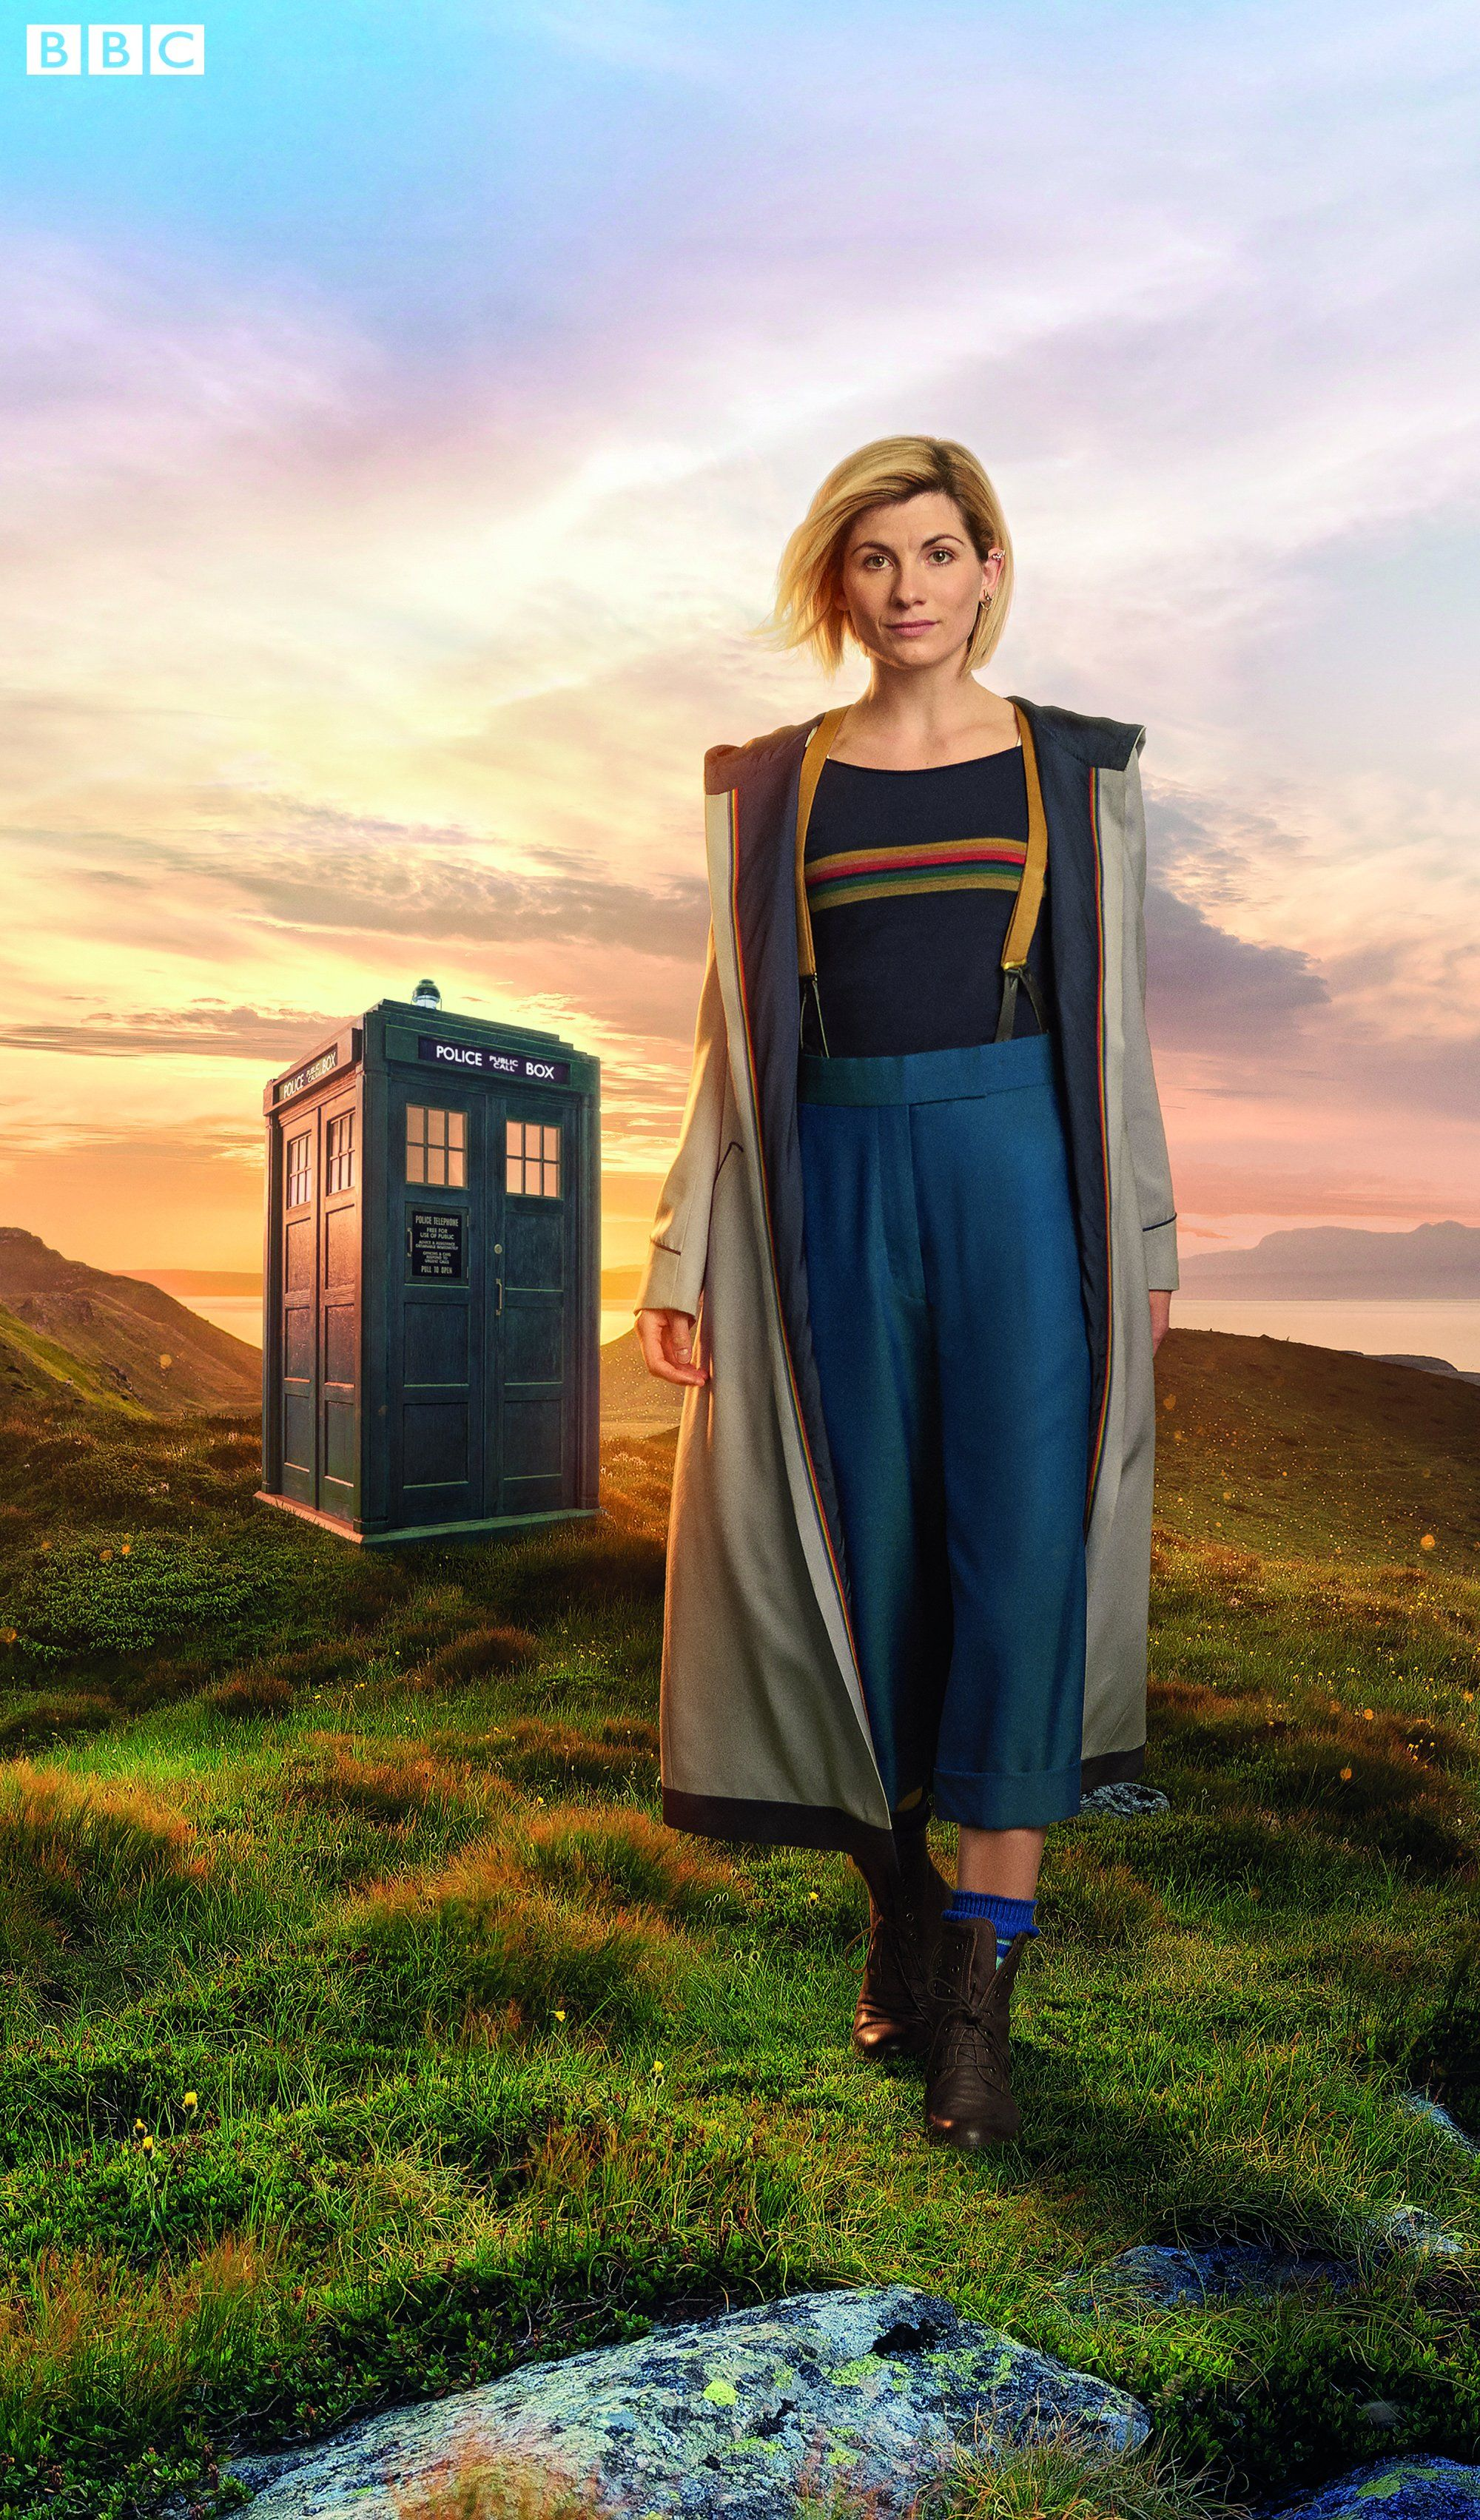 'Doctor Who' Star Jodie Whittaker Says She's Leaving The Country When New Series